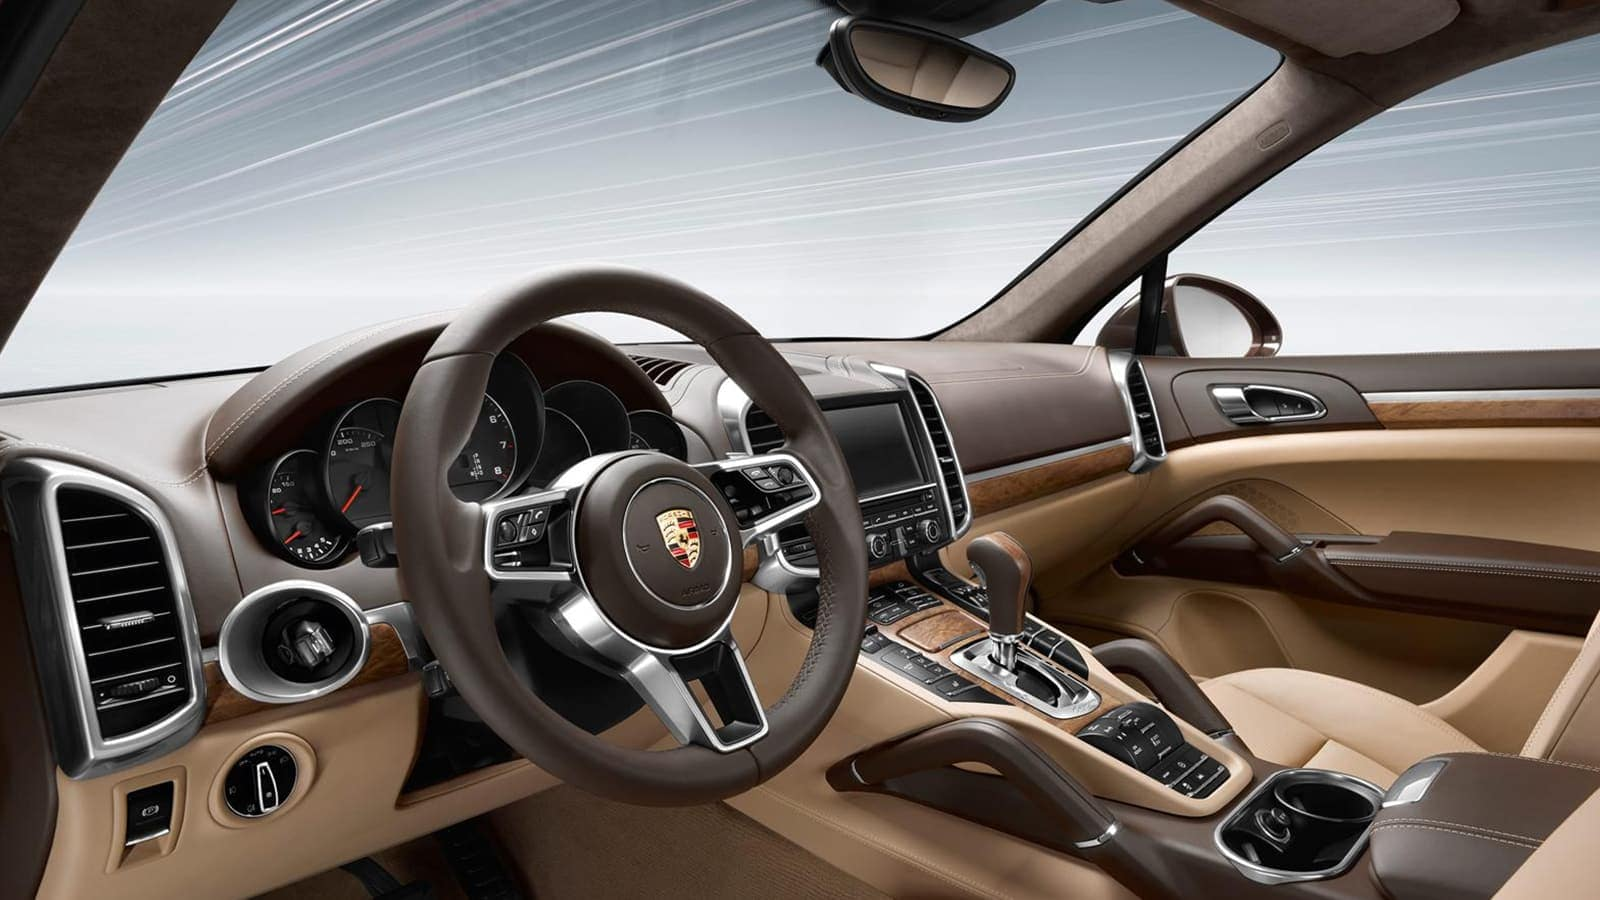 Porsche Cayenne Accommodating Interior